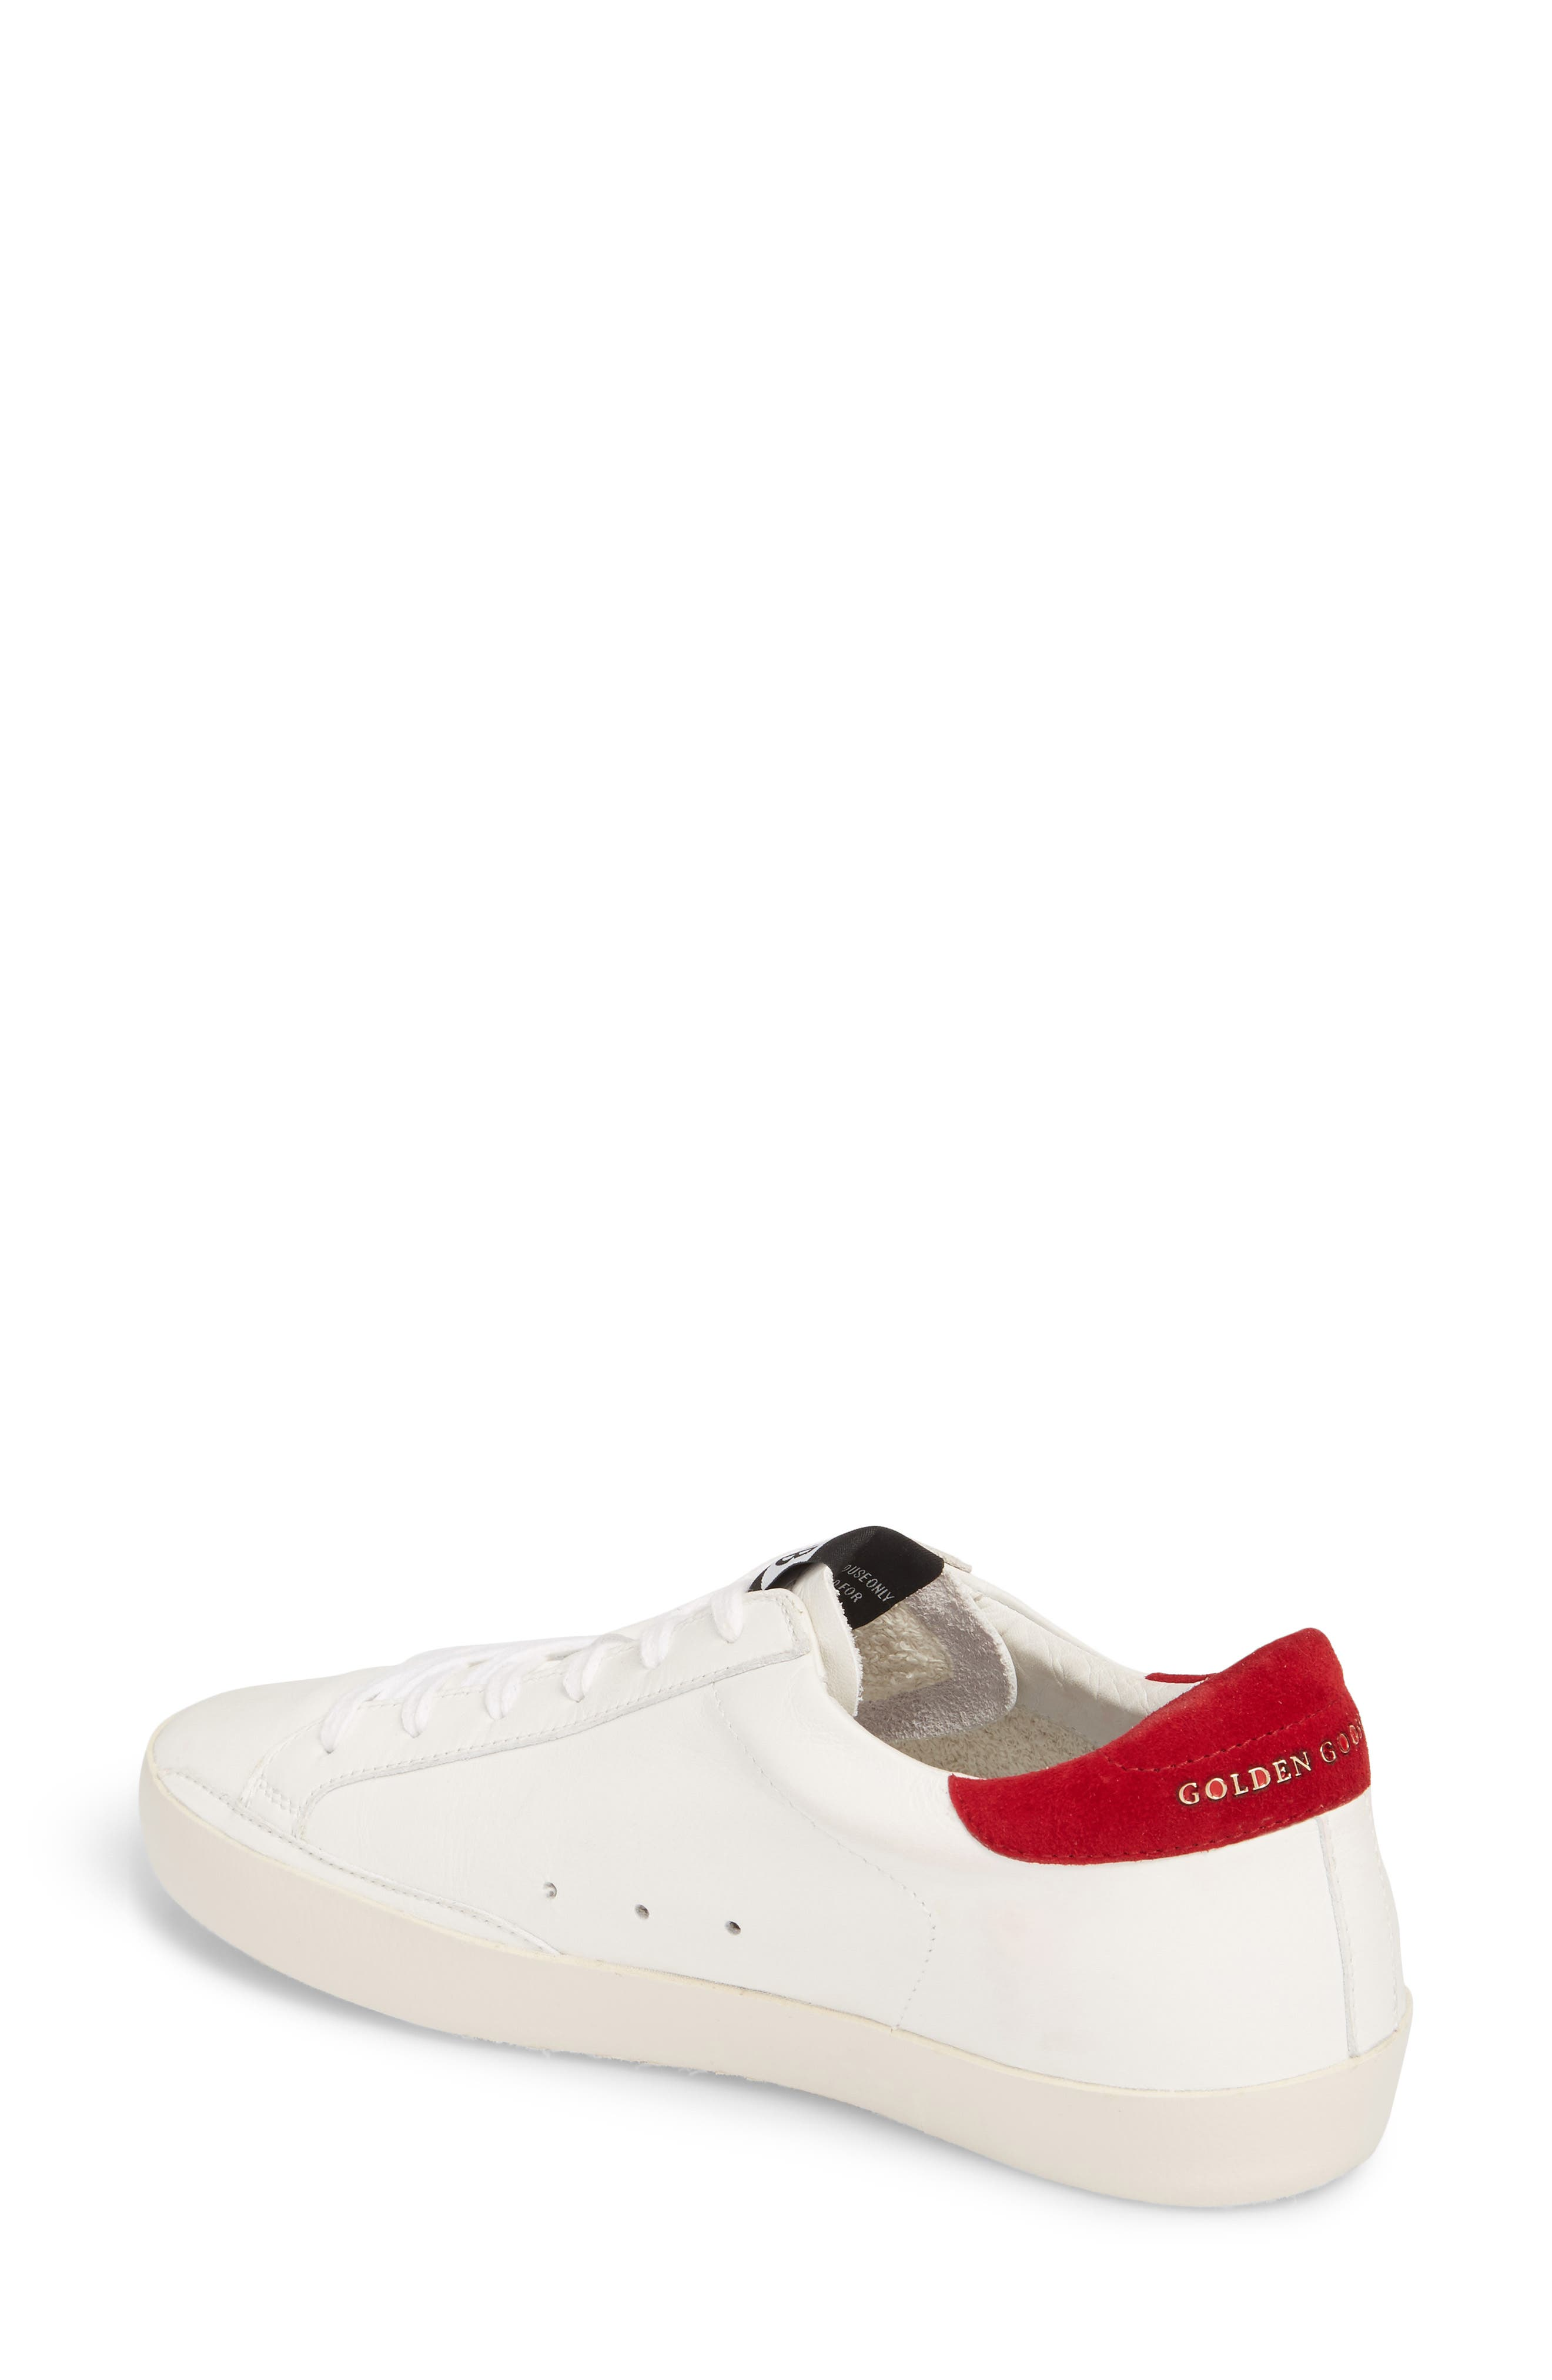 Superstar Low Top Sneaker,                             Alternate thumbnail 2, color,                             White/ Bordeaux